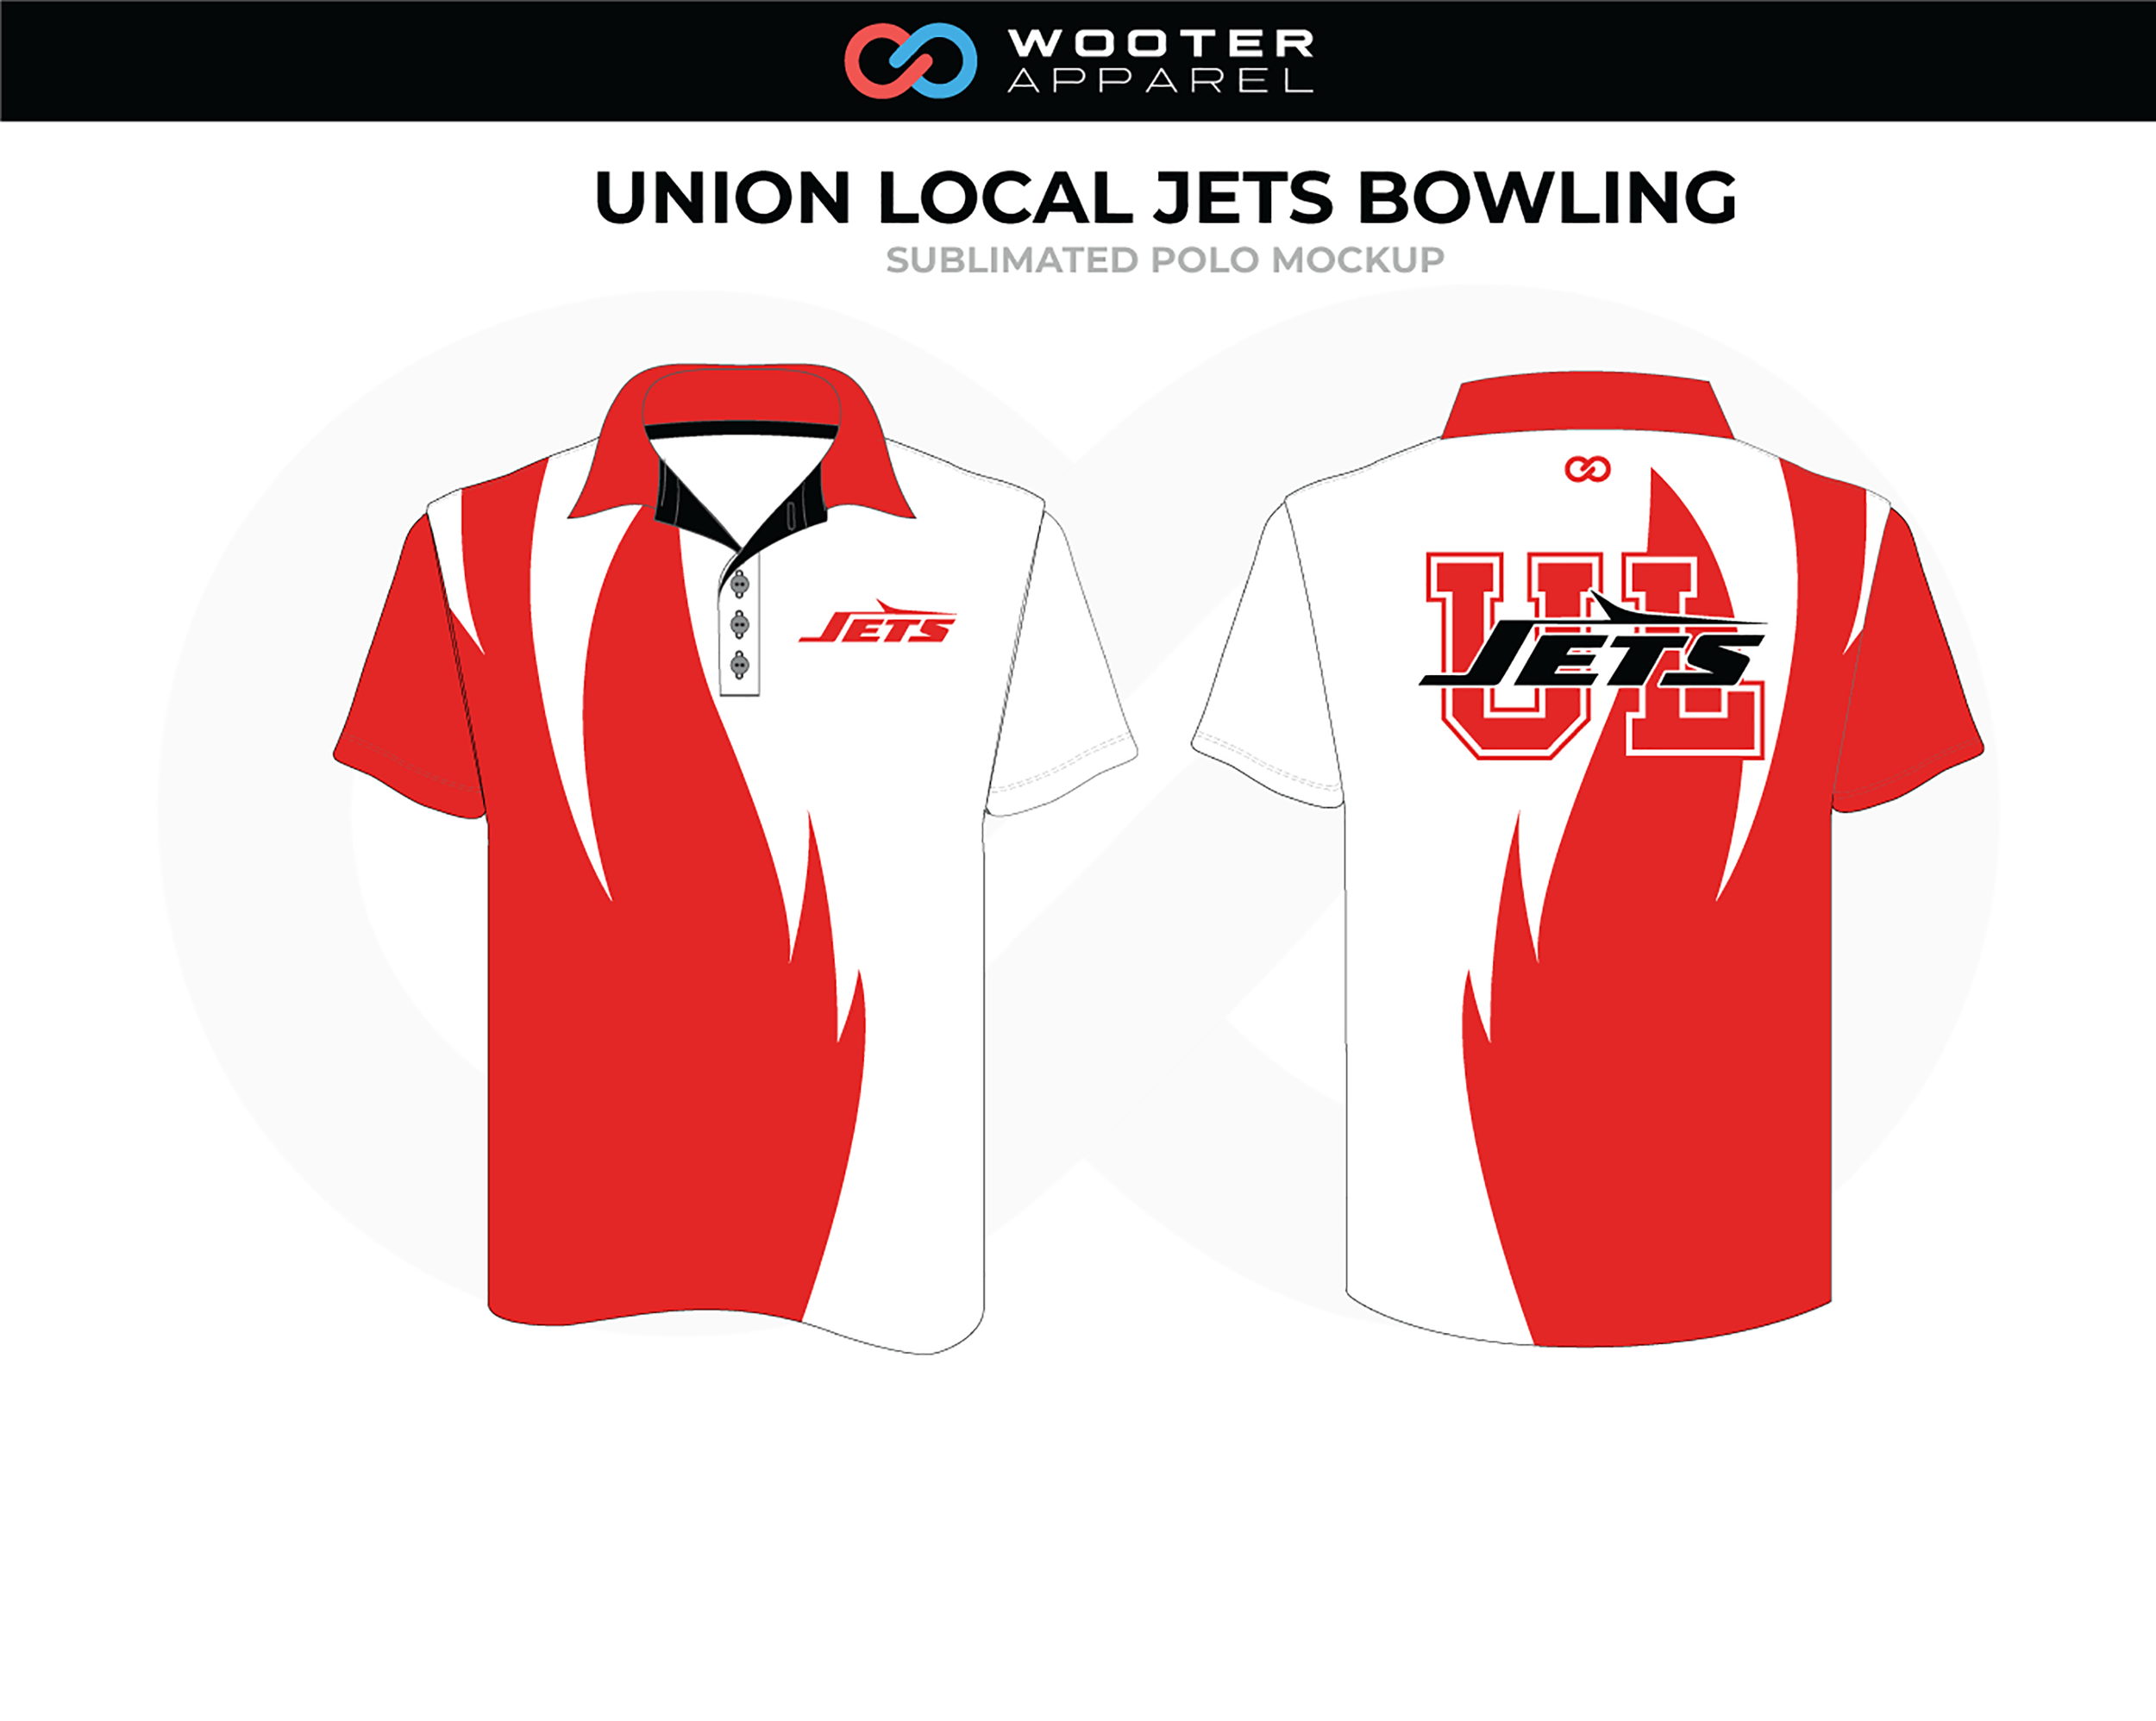 UNION LOCAL JETS Red White Black Bowling Polo